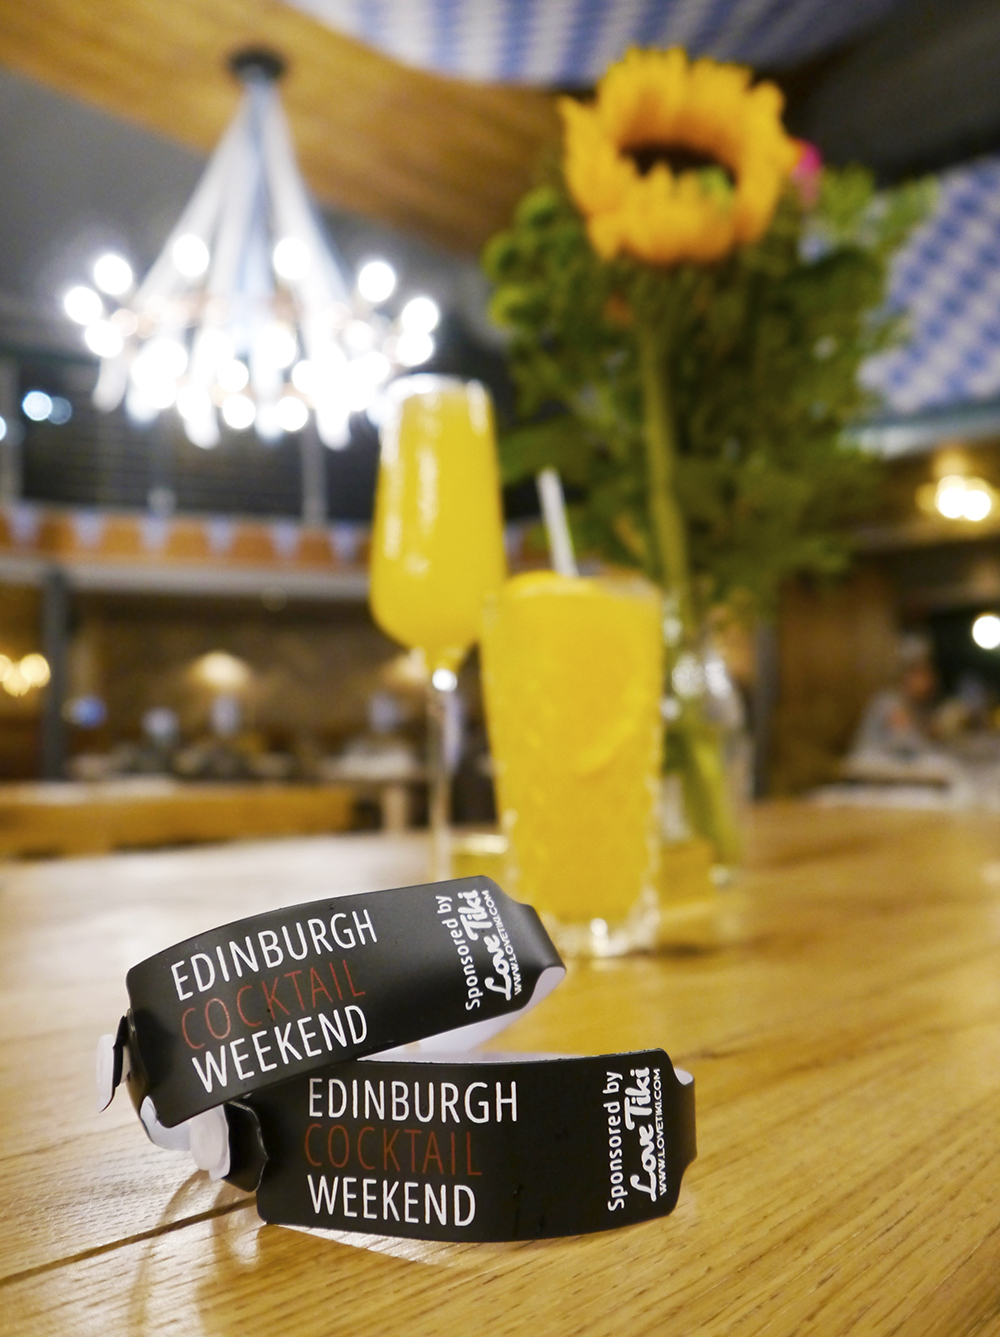 Get your wristbands and enjoy the first Edinburgh Cocktail Weekend with signature drinks at Brewhemia and 49 other cocktail bars